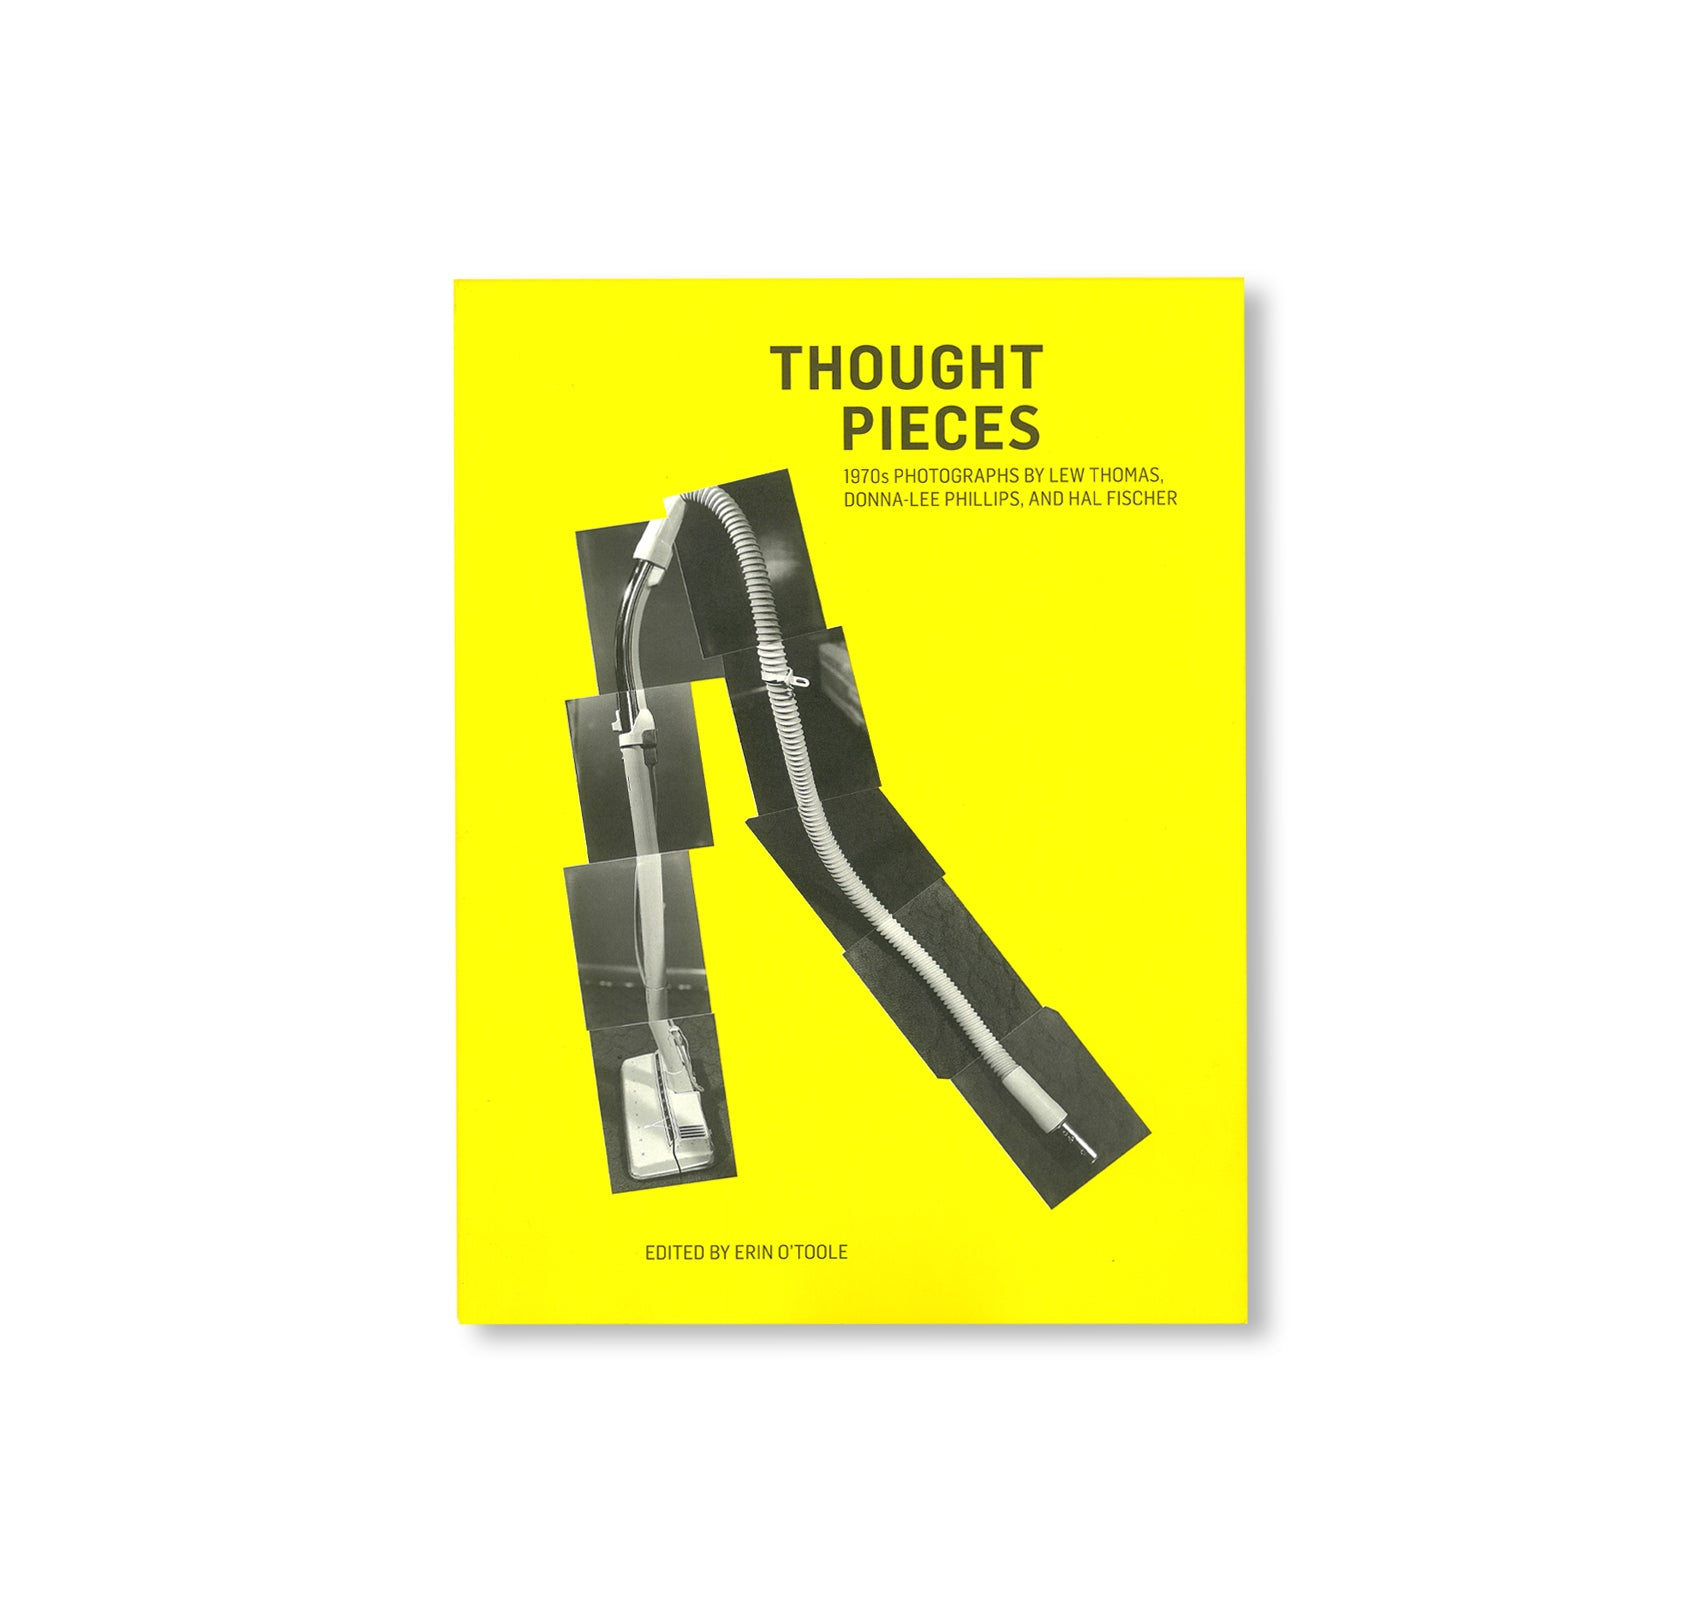 THOUGHT PIECES: 1970S PHOTOGRAPHS BY LEW THOMAS, DONNA-LEE PHILLIPS, AND HAL FISCHER by Erin O'Toole